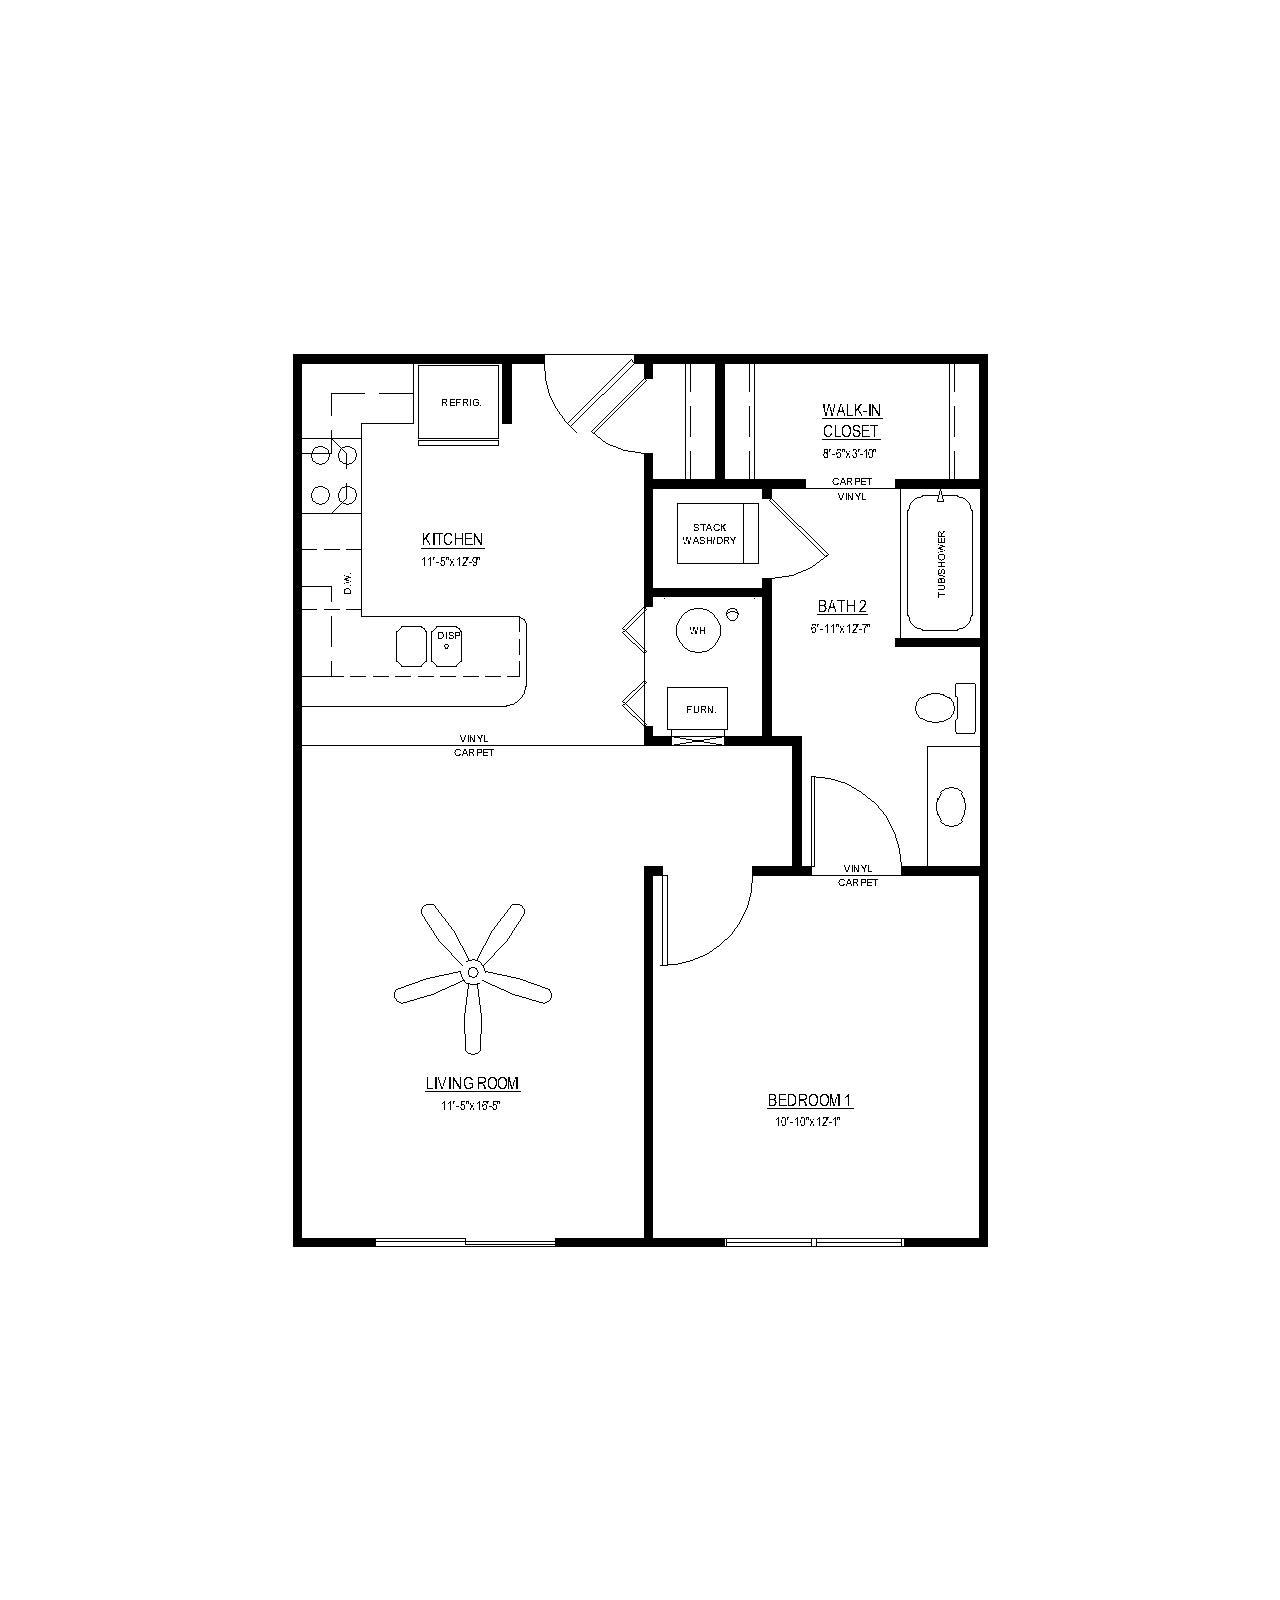 Apartments In Ames Iowa: Walnut Place Apartments In Ames, Iowa